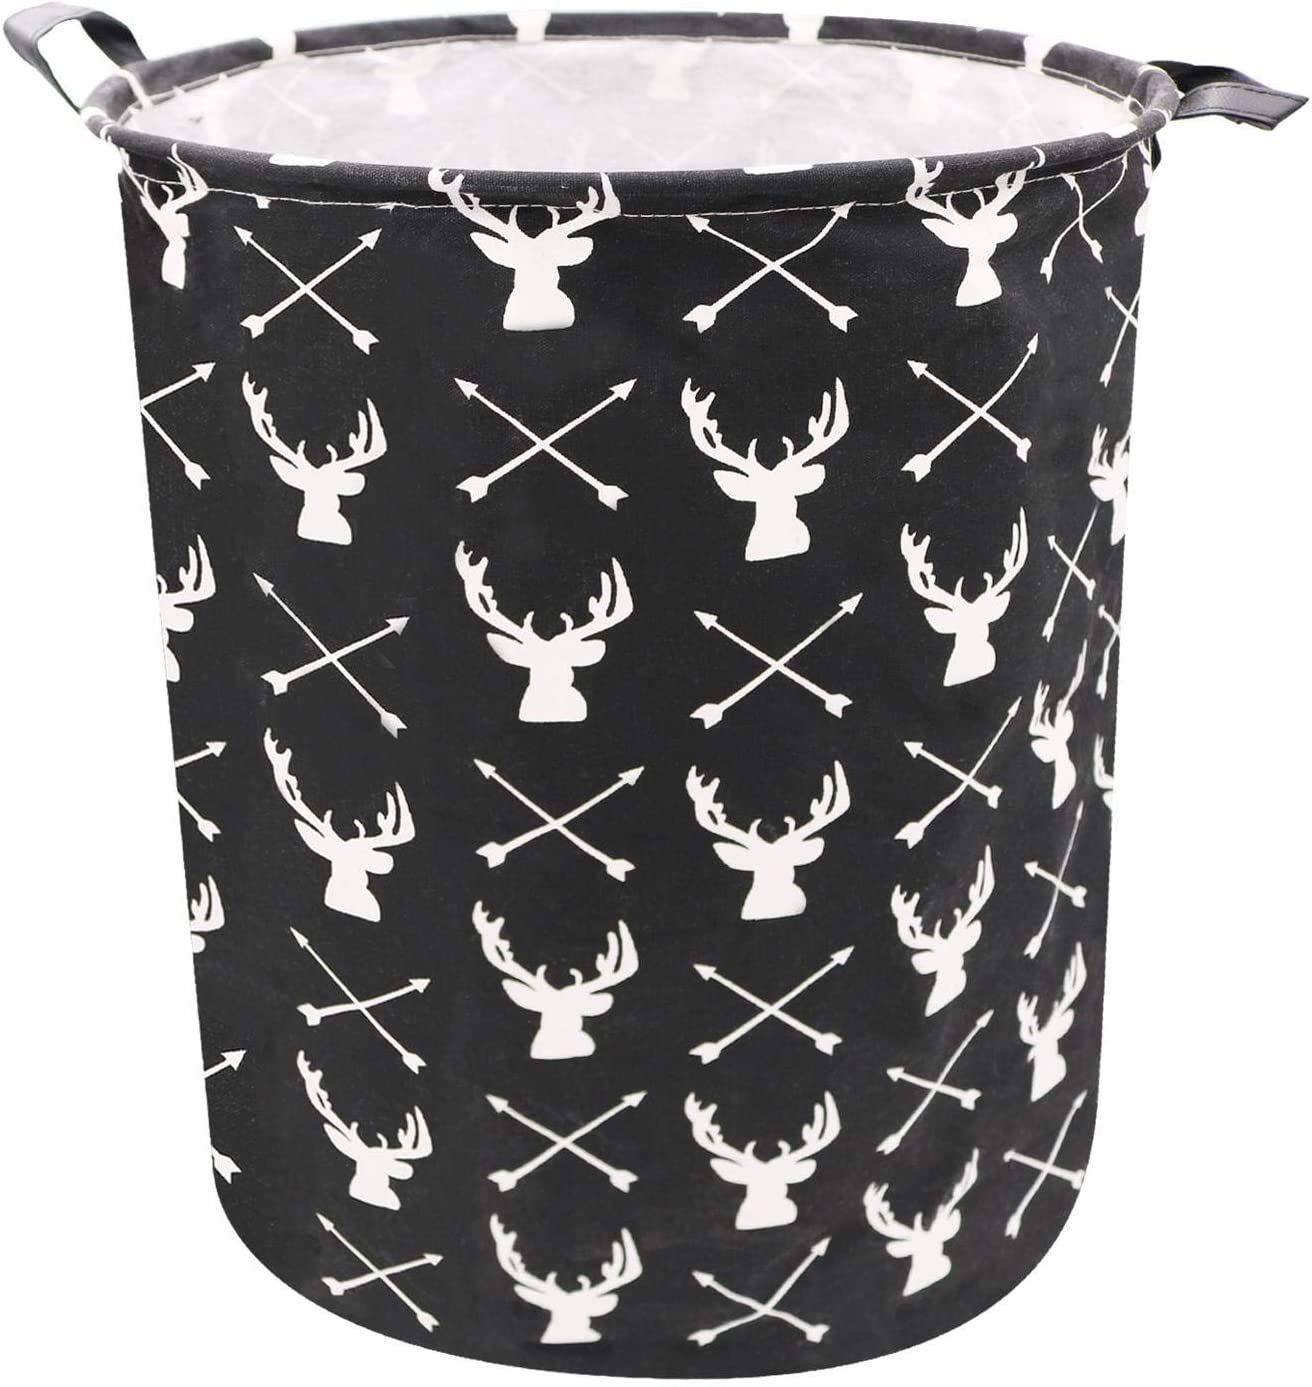 ZUEXT 19.7 Inch Large Storage Hampers,Black Canvas Fabric Waterproof Clothes Basket for Men,Collapsible Baskets Storage Bin for Kids Room Home Decor,Toy Organizer,Baby Hamper for Boys(White Deer)